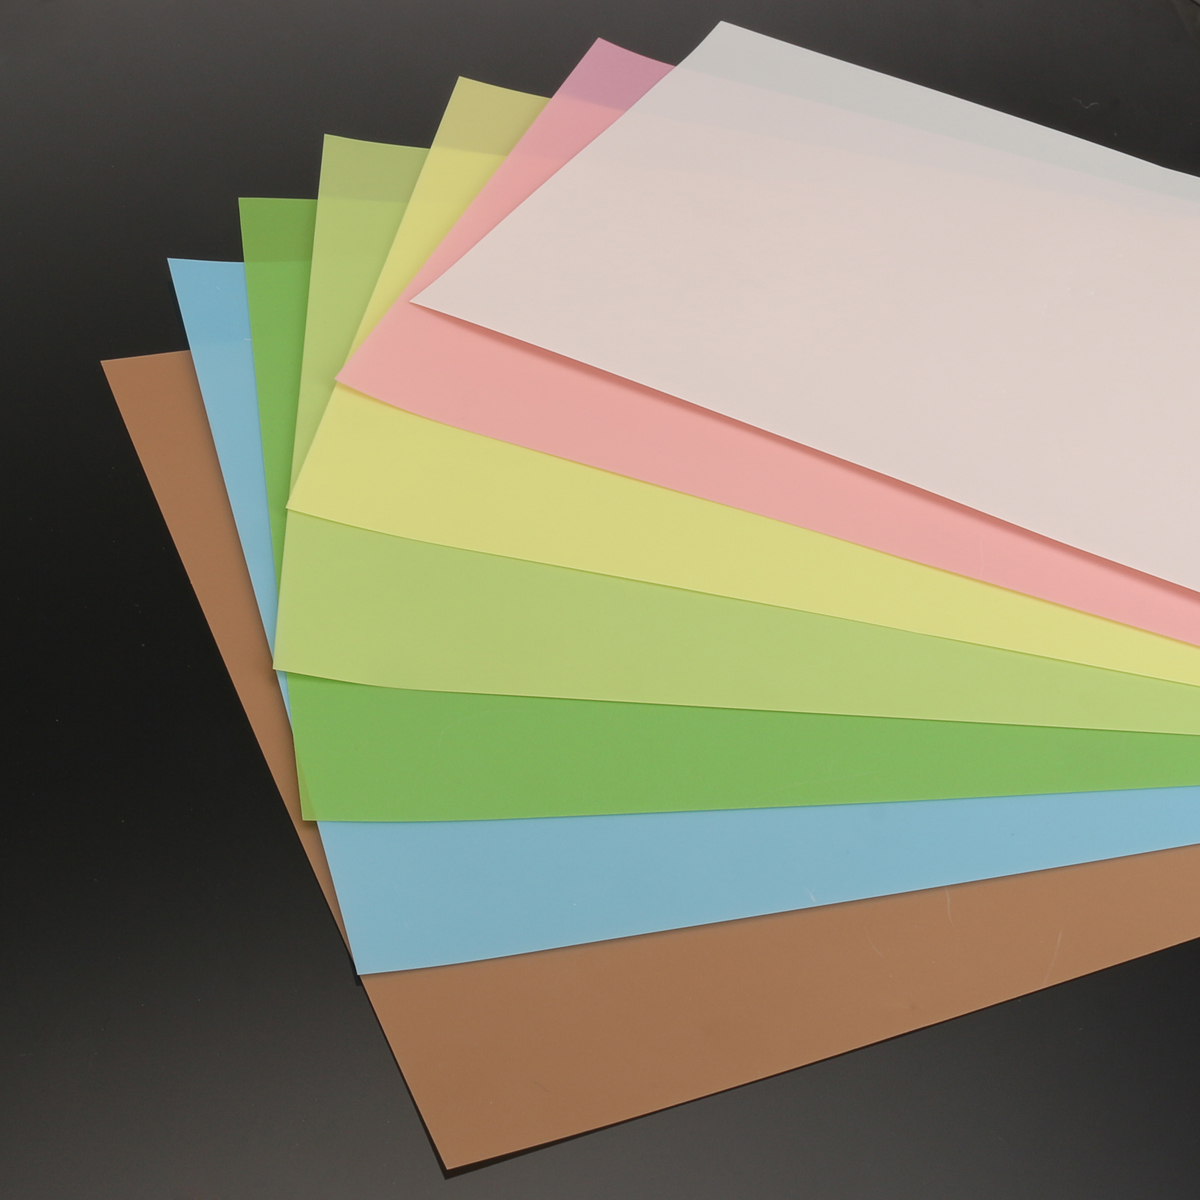 7Pcs 8.7x11 Inch Microfinishing Lapping Film Sheets Each of 0.3 to 30 Micron 7 Colors